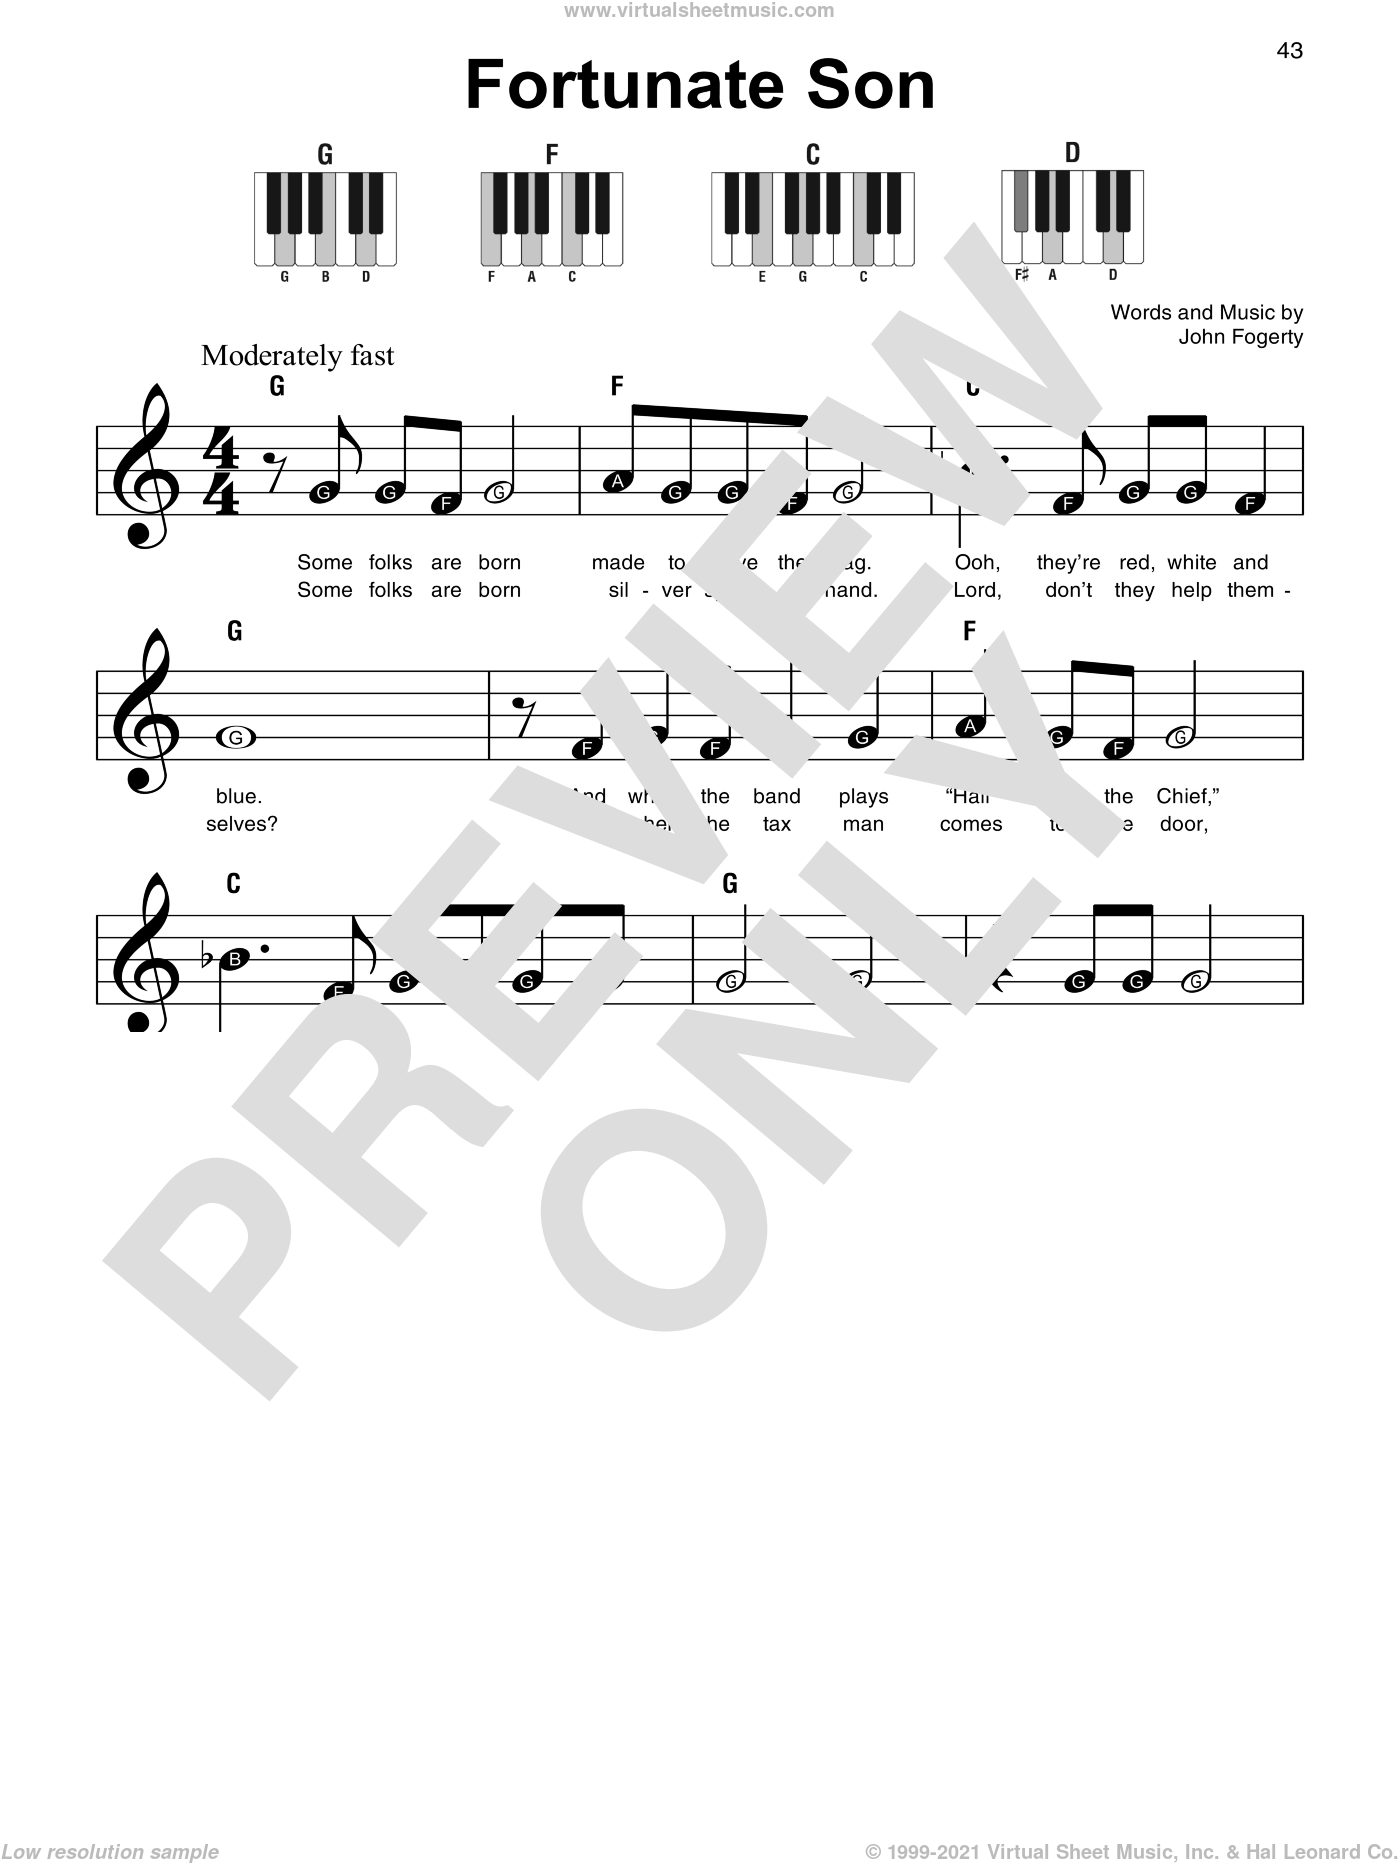 Fortunate Son sheet music for piano solo by Creedence Clearwater Revival and John Fogerty, beginner skill level